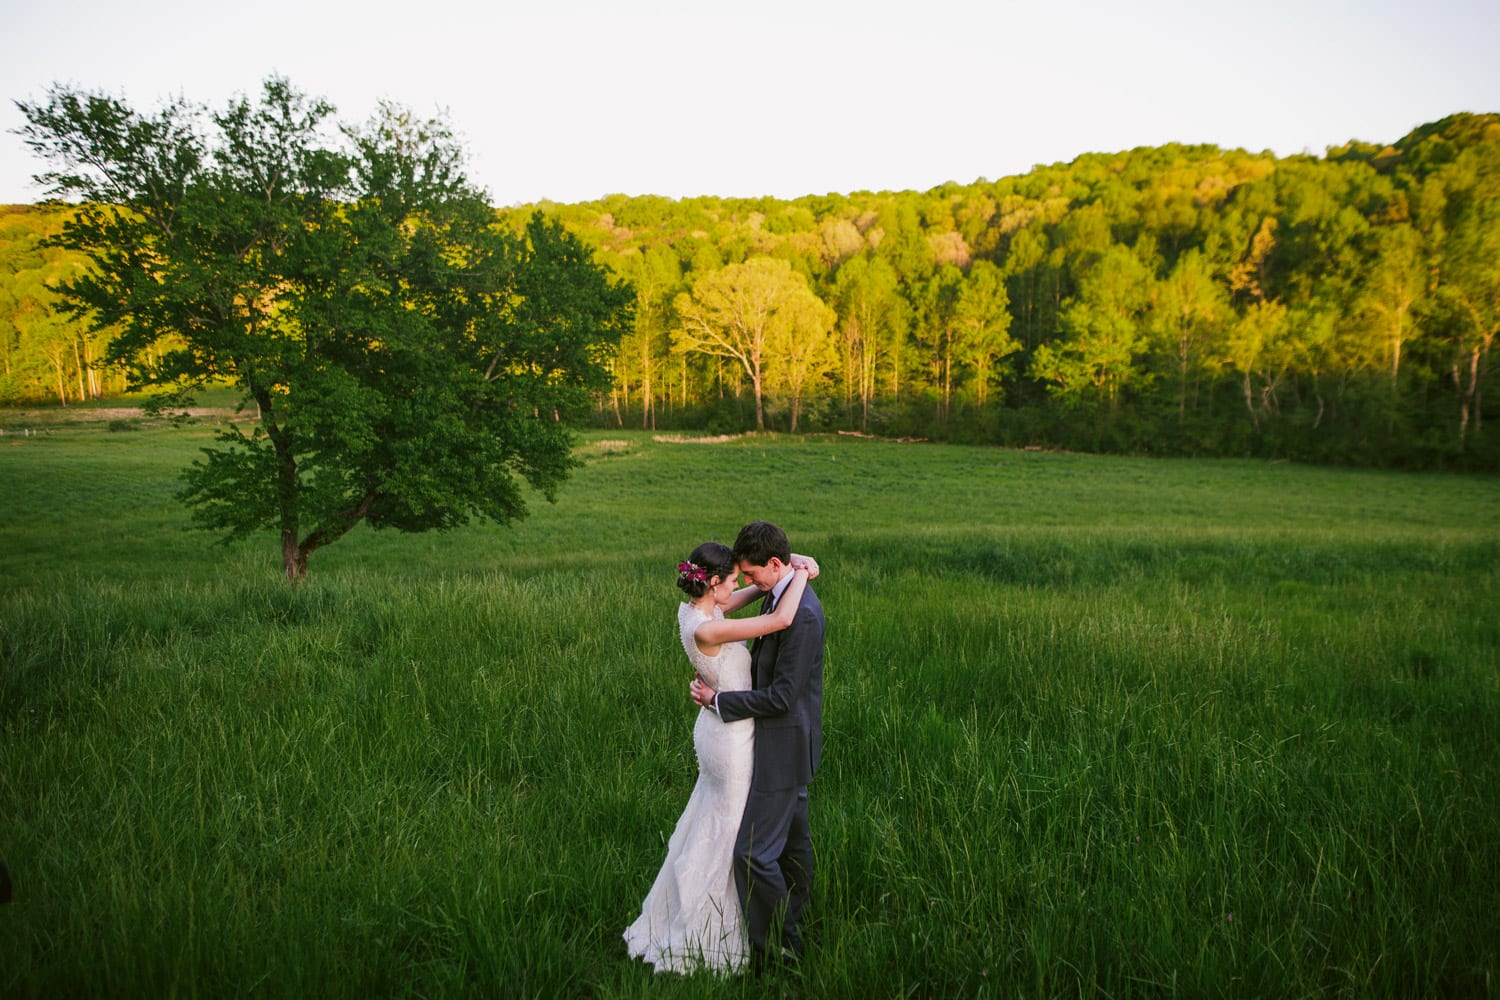 Bride and groom hold each other in the pasture